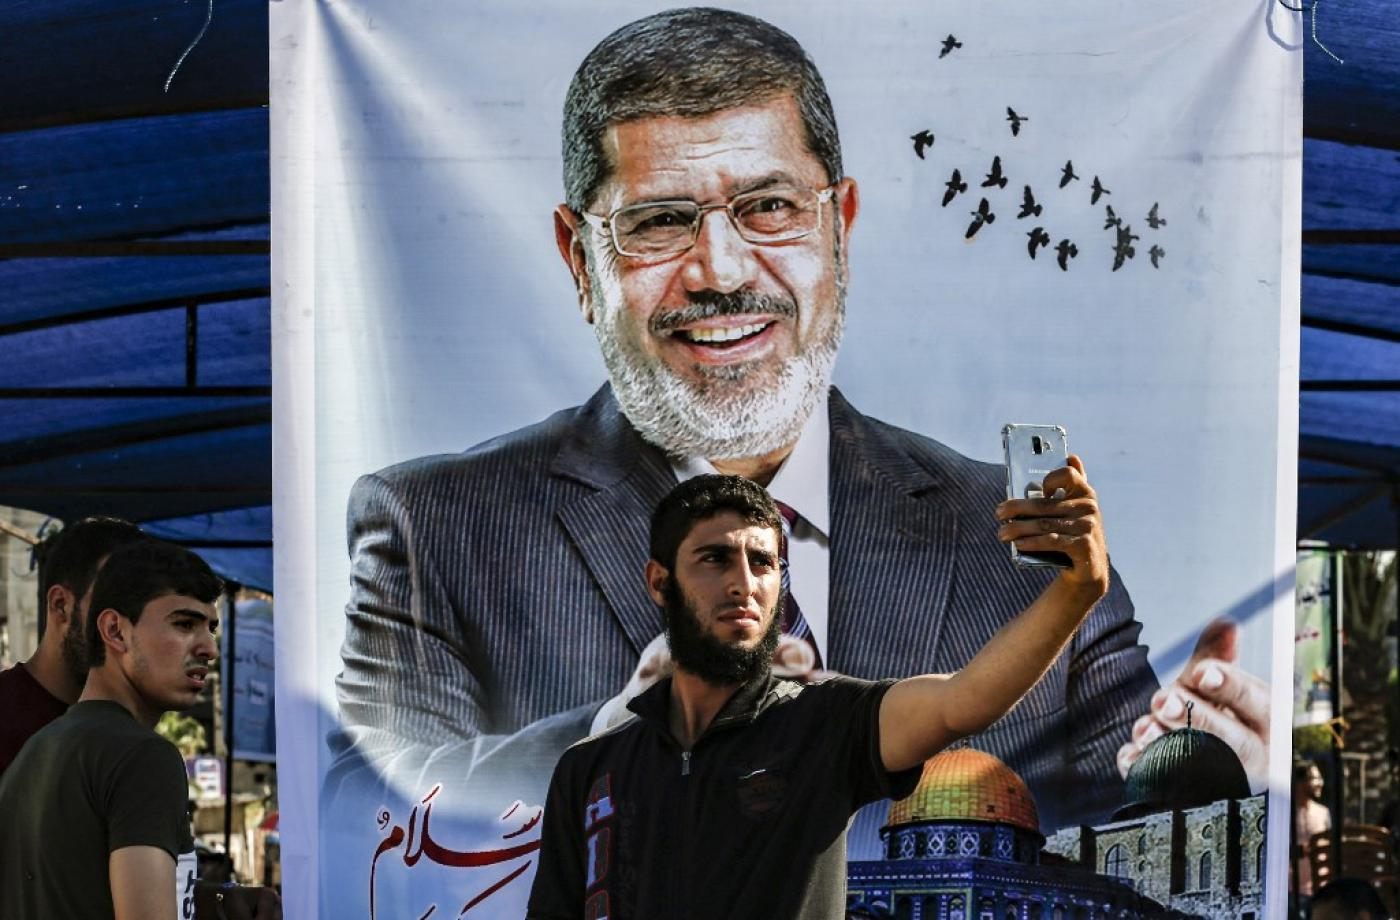 Mohamed Morsi's death and the West's hypocrisy